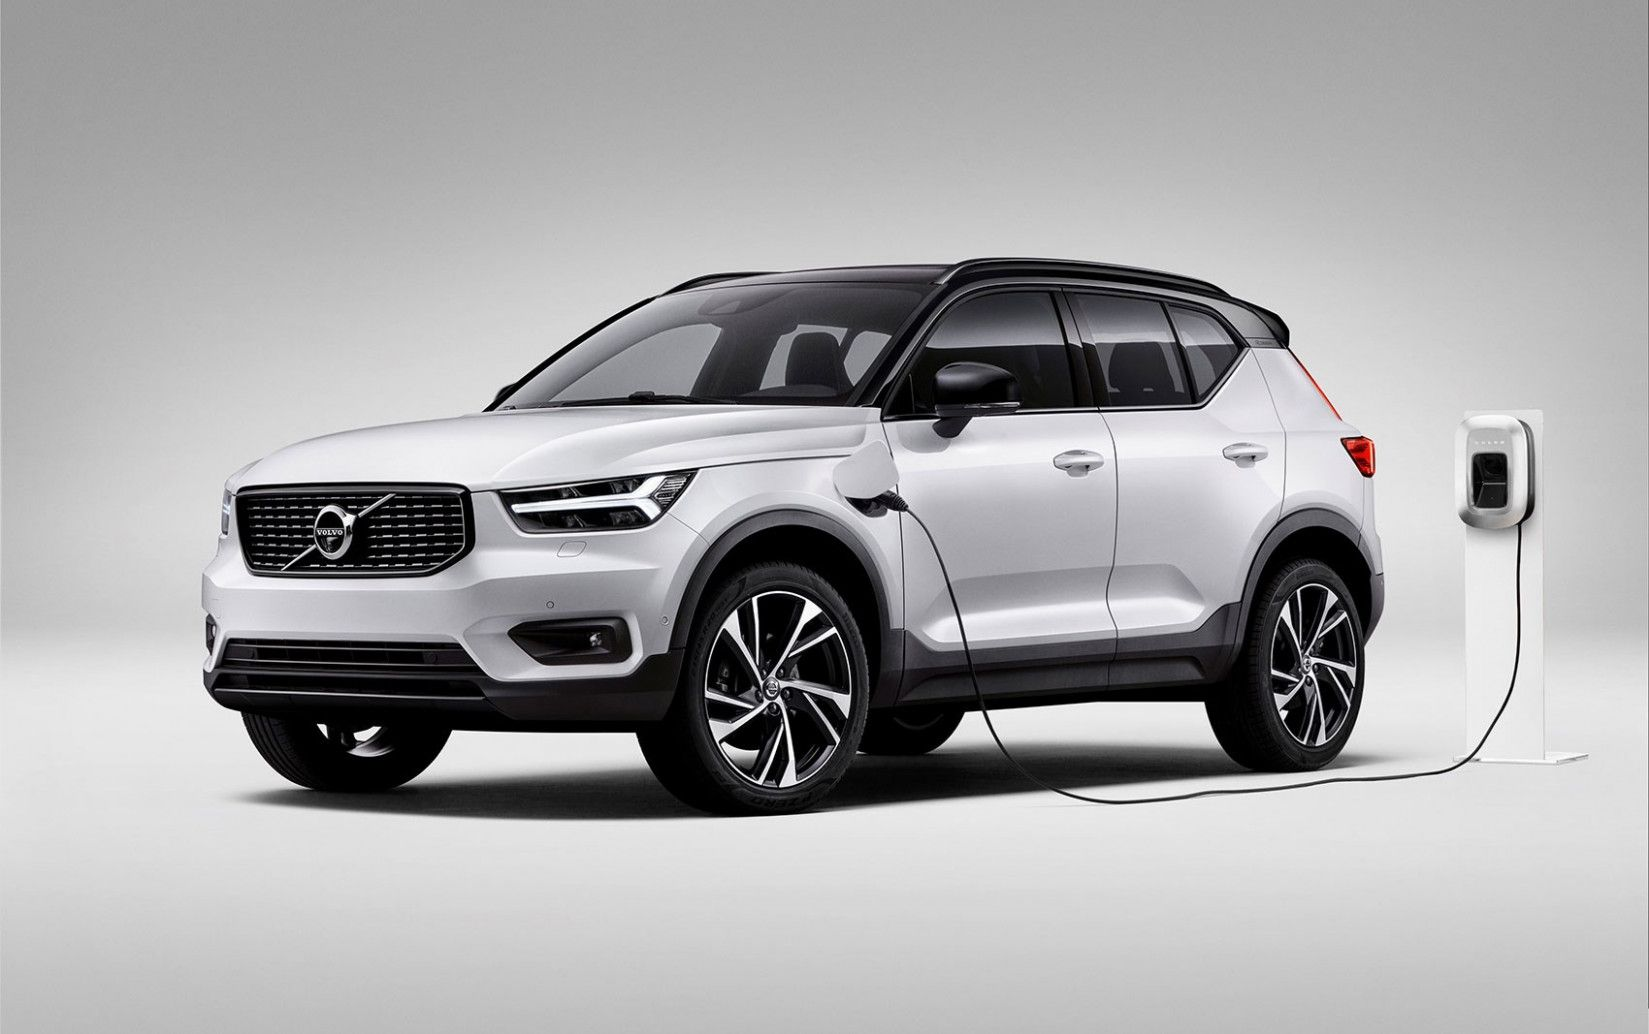 Volvo New Models 9 History (With images) Volvo, Hybrid